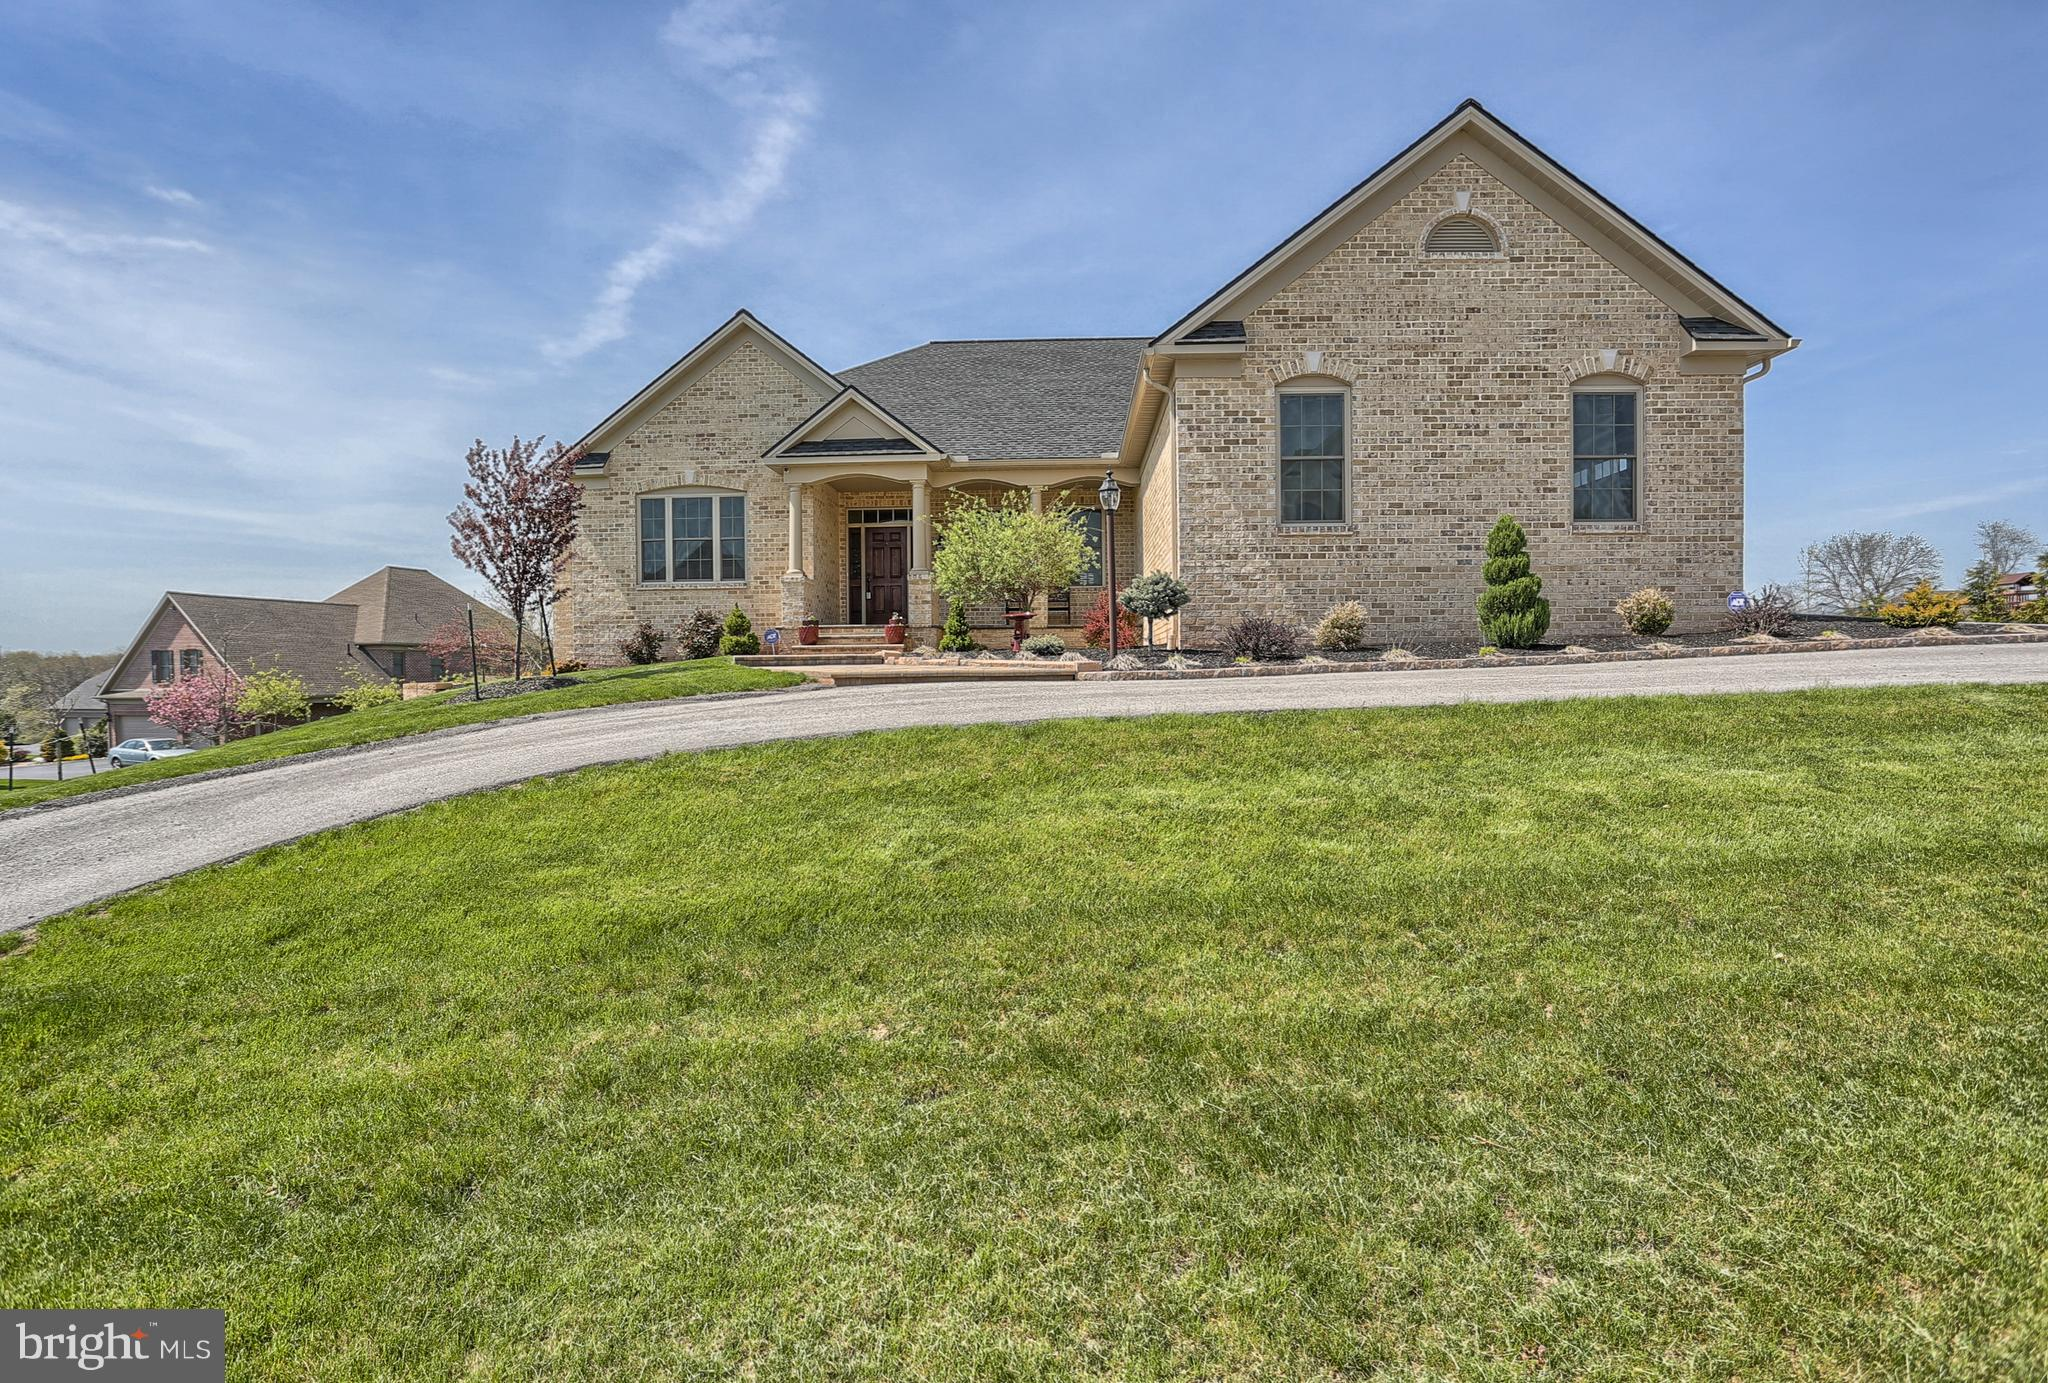 1505 WINSFORD LANE, YORK, PA 17404